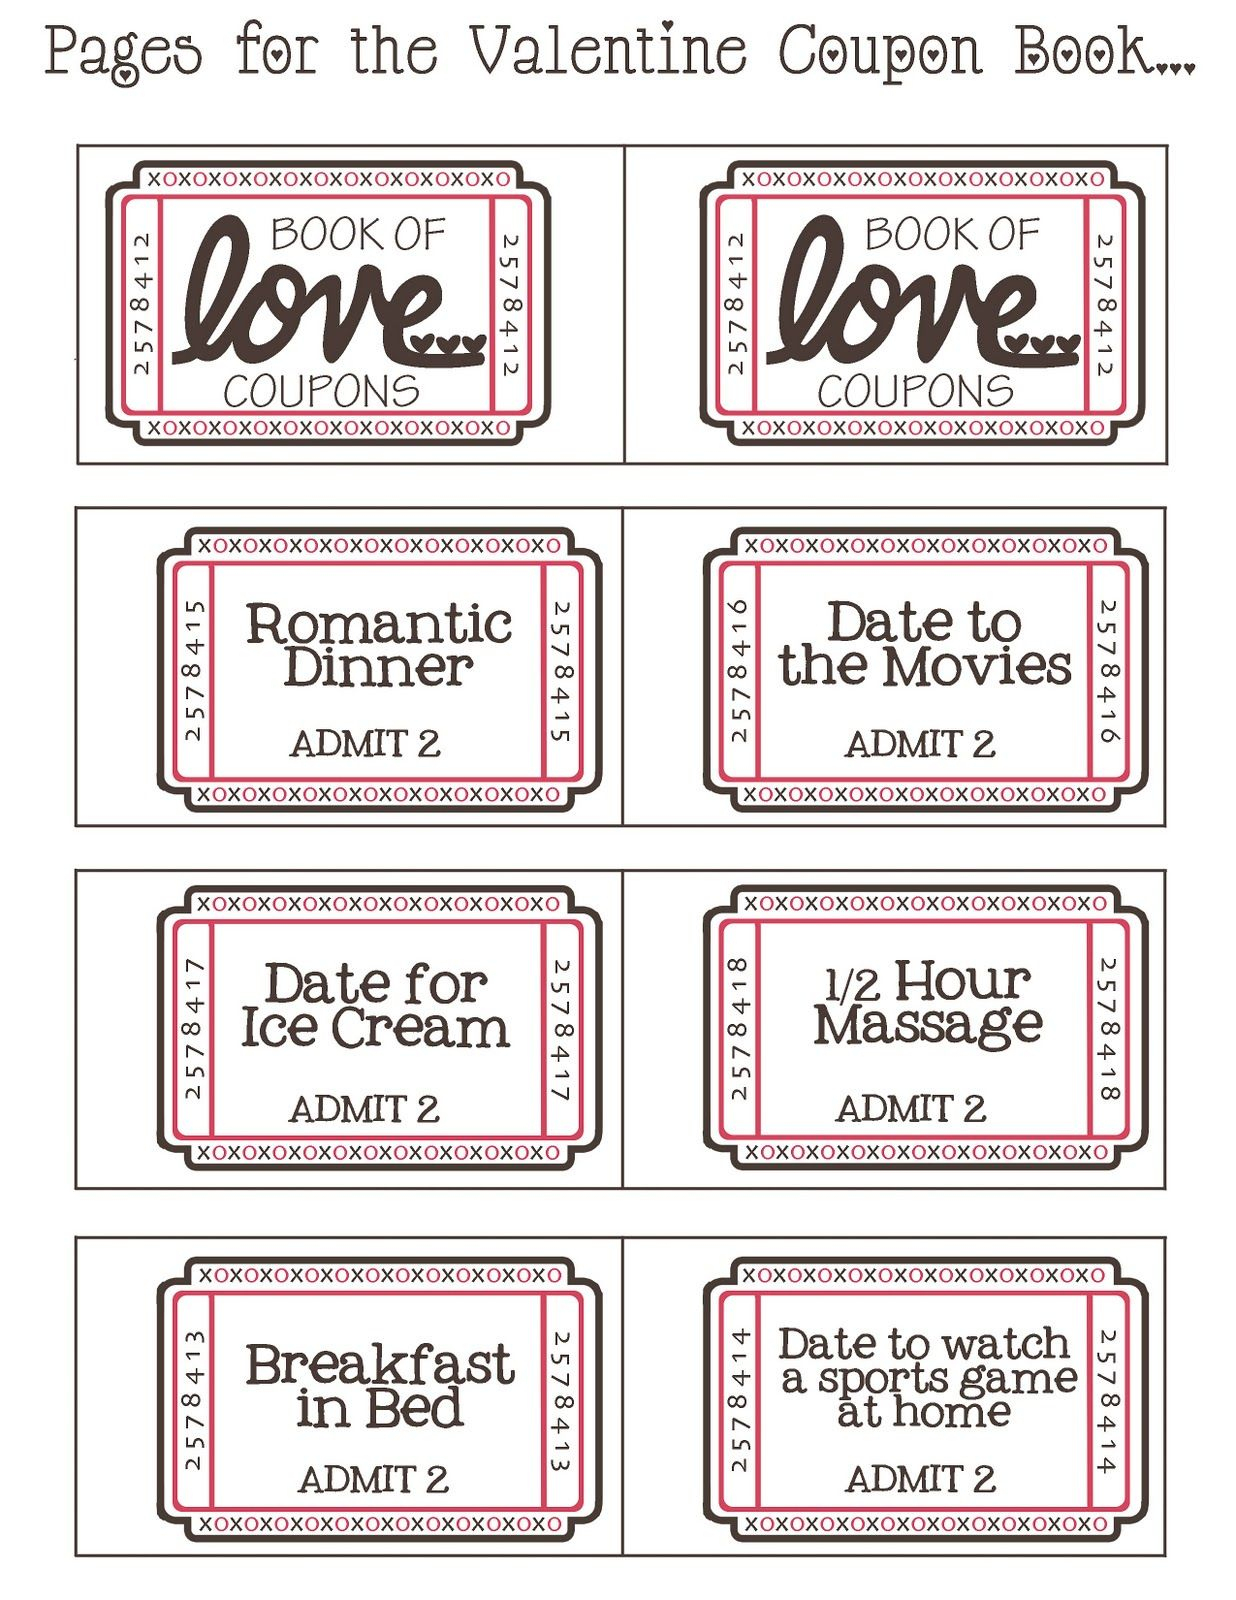 Follow Link For Some Great Free Blank Printable Vouchers   Stickers - Free Printable Coupon Book For Boyfriend